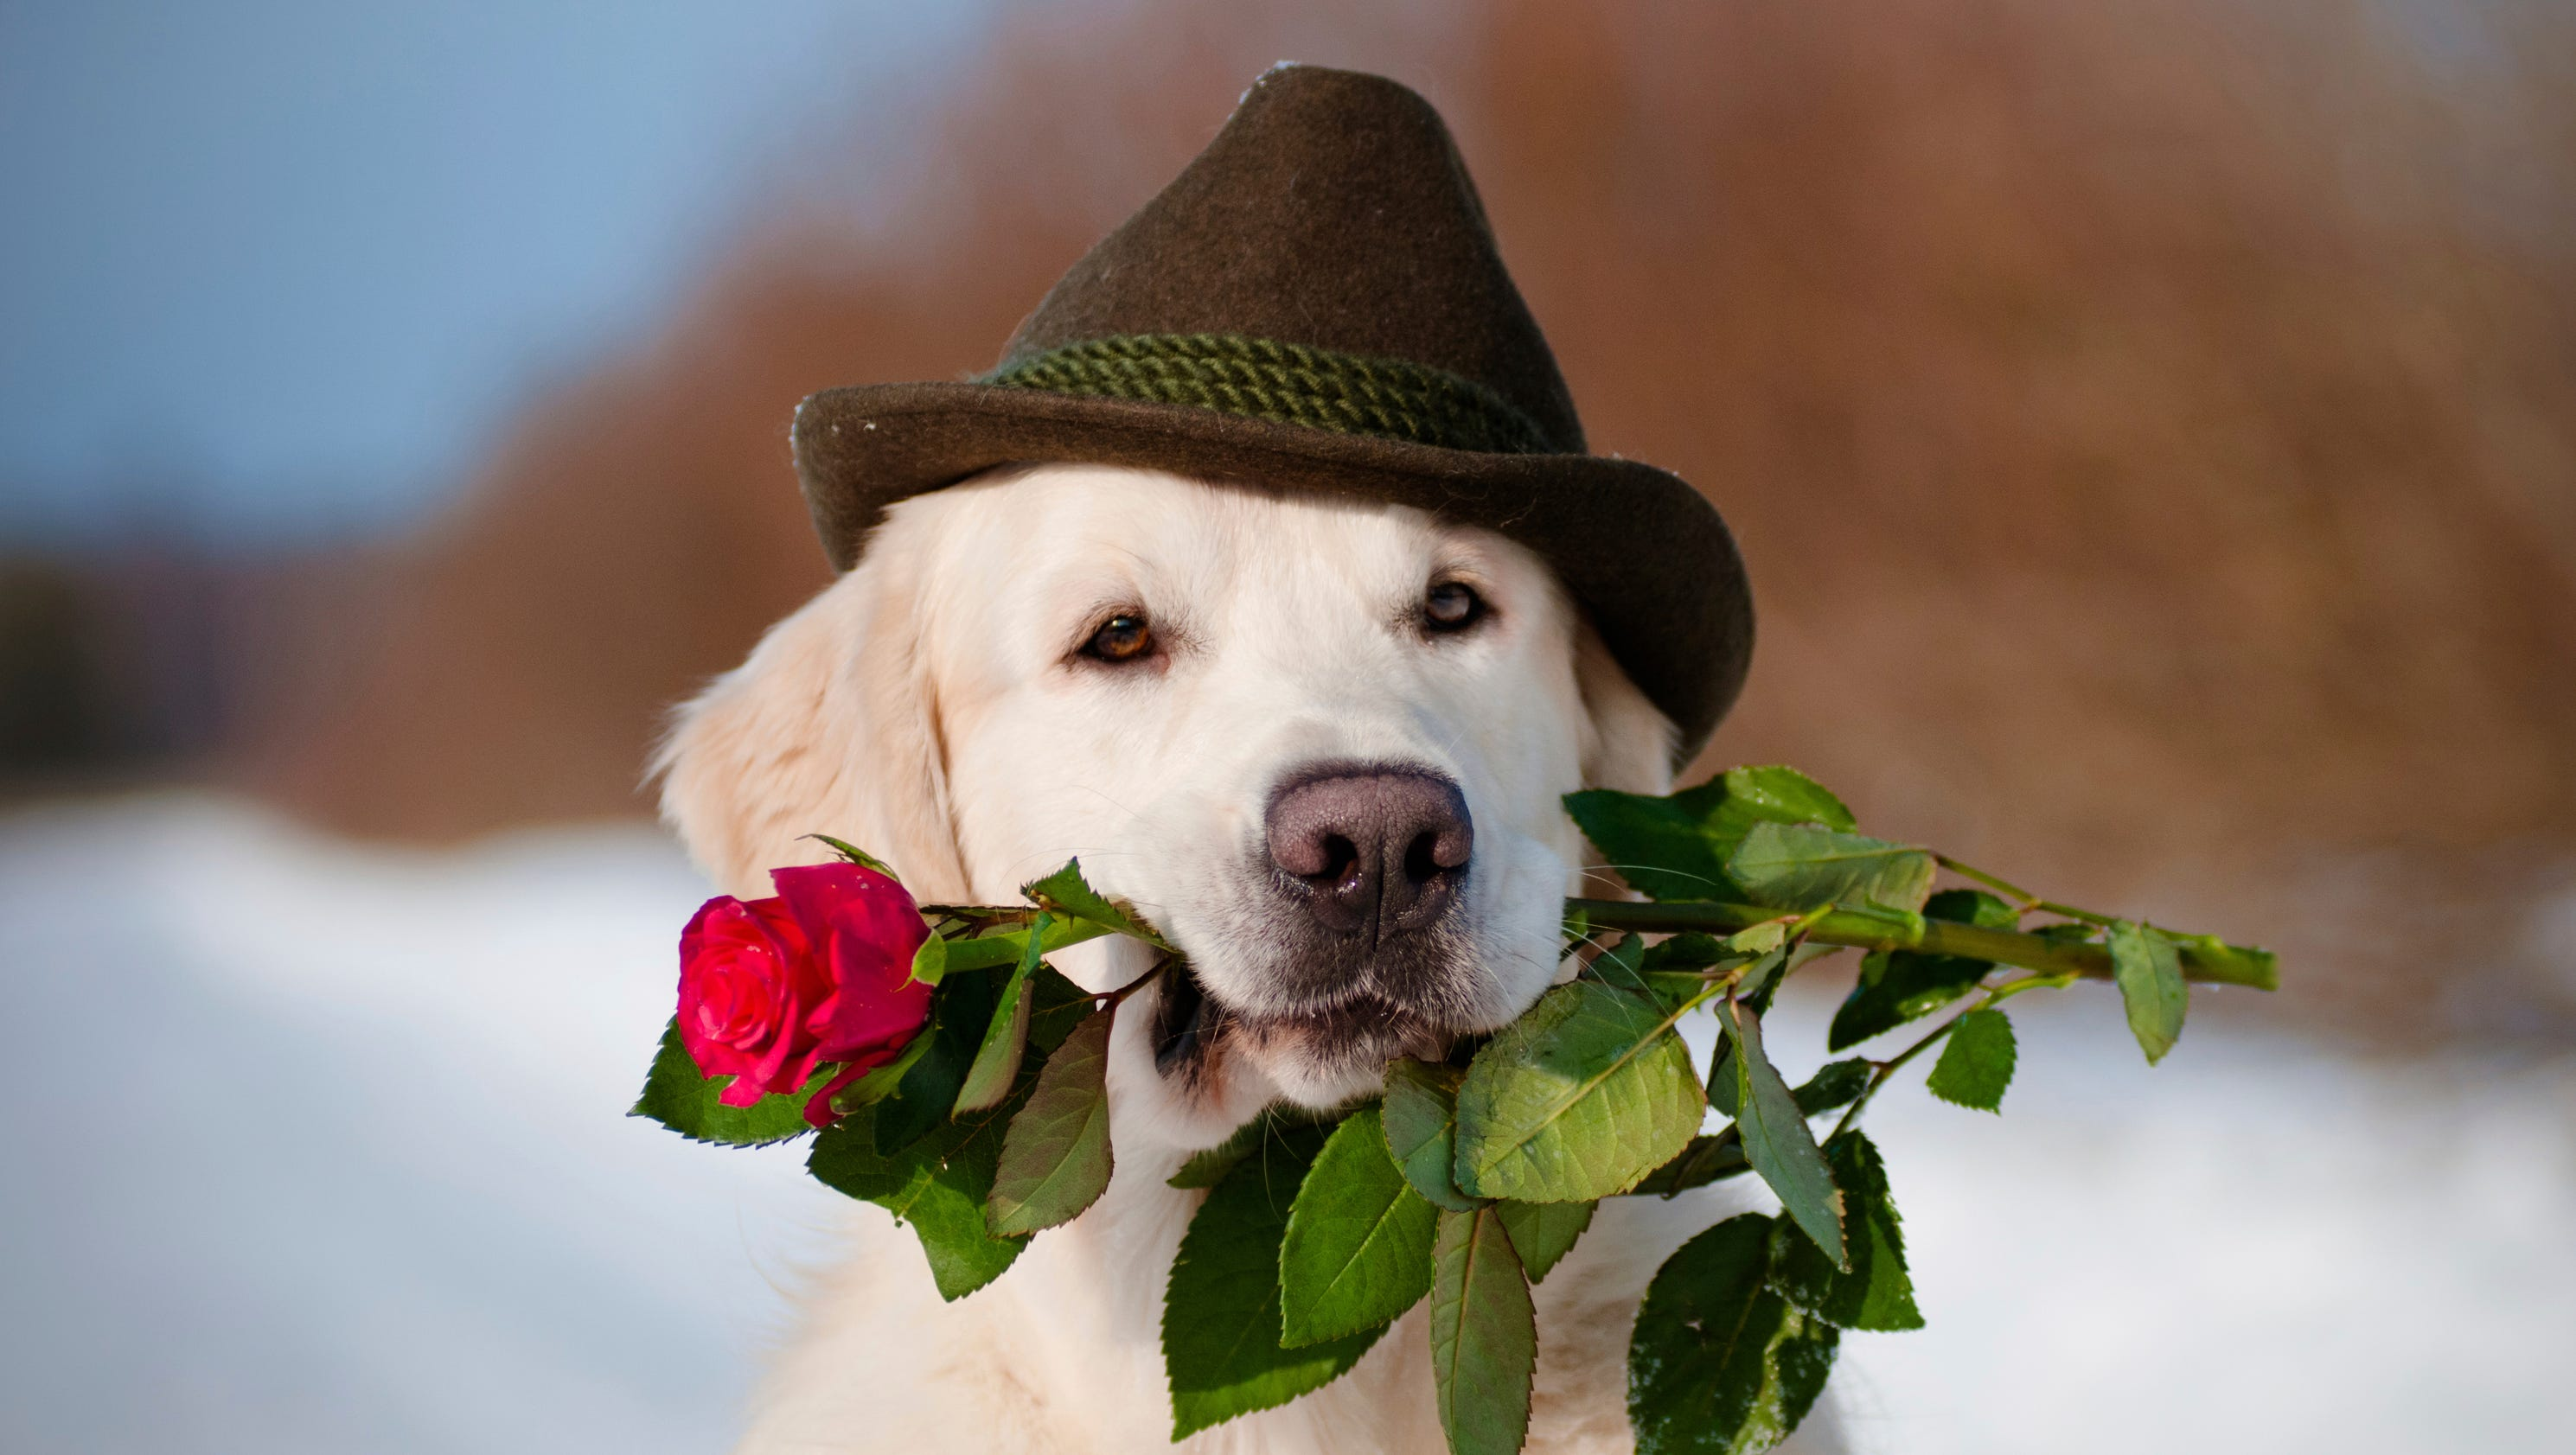 Deliver flowers today in bangalore dating 8